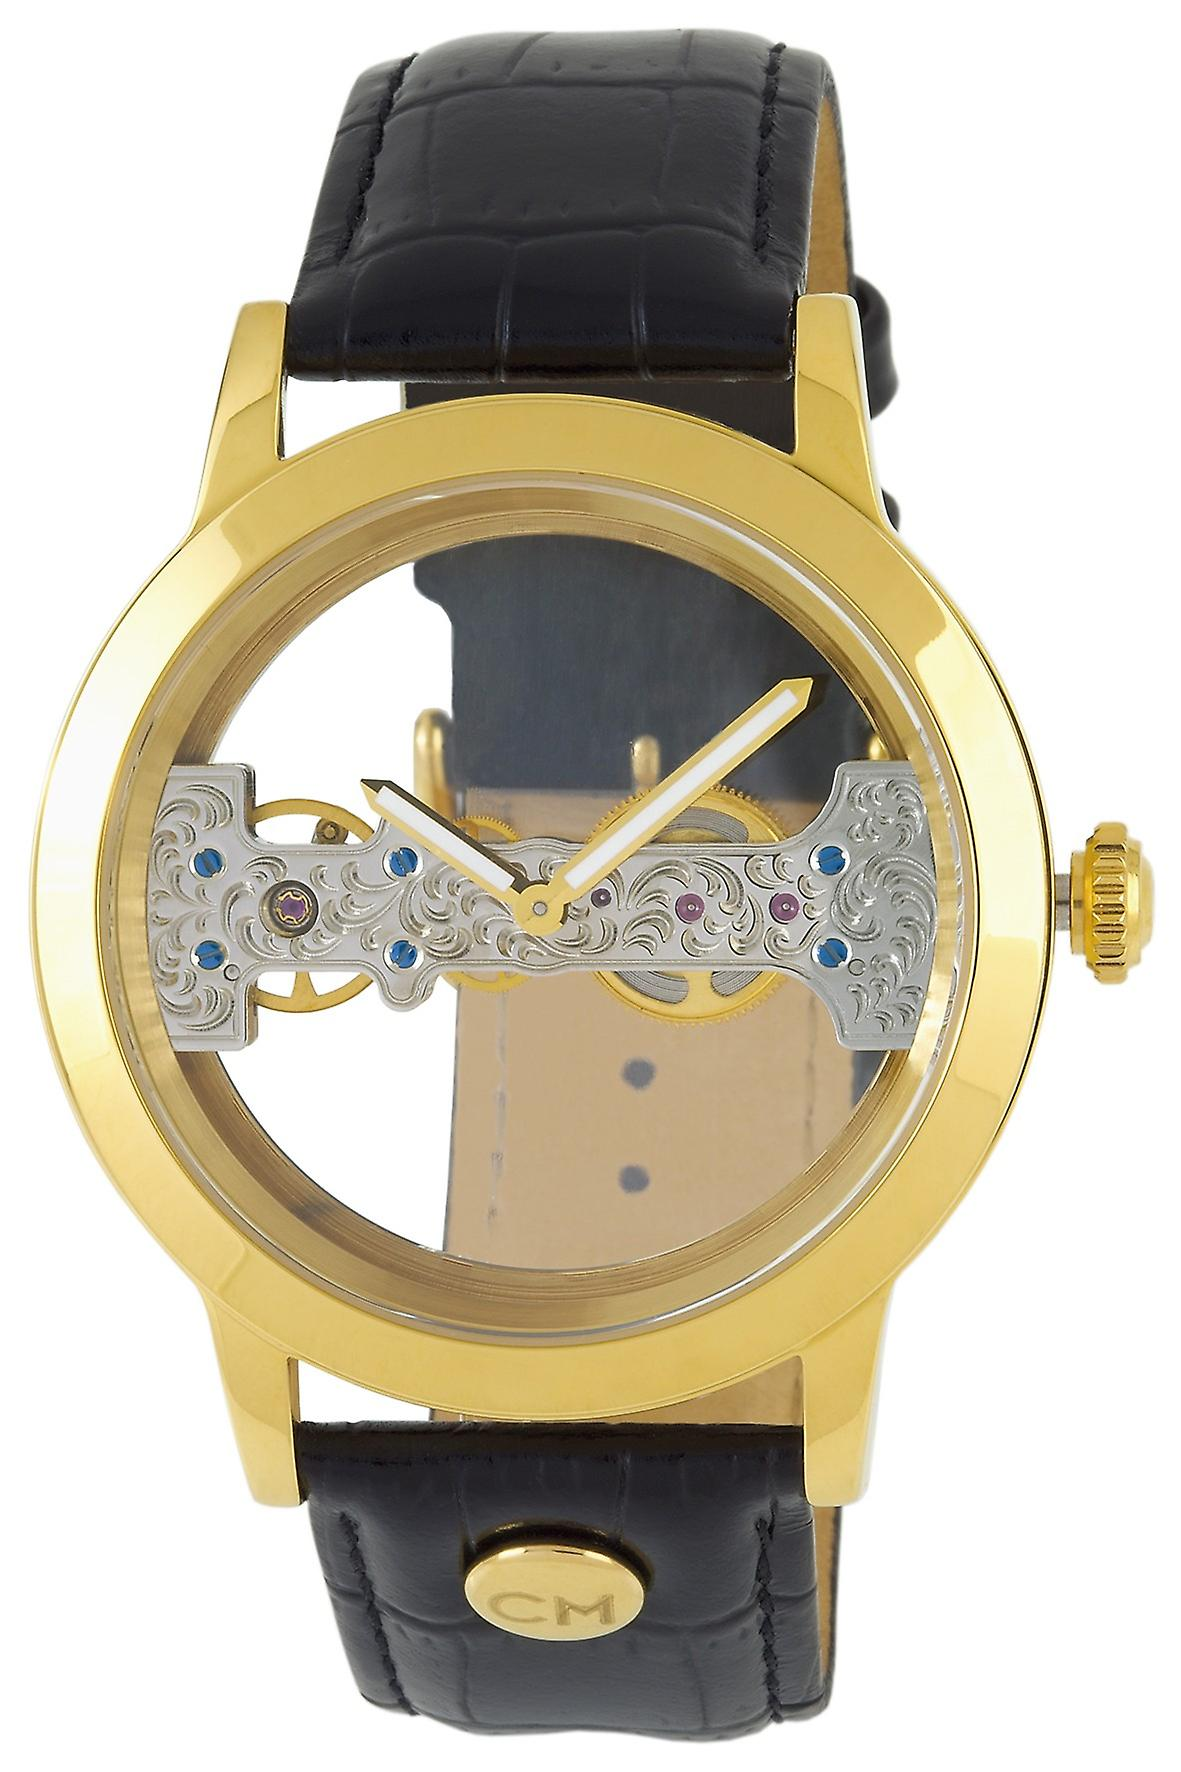 Carlo Monti Men's Watch Lucca CM109-282